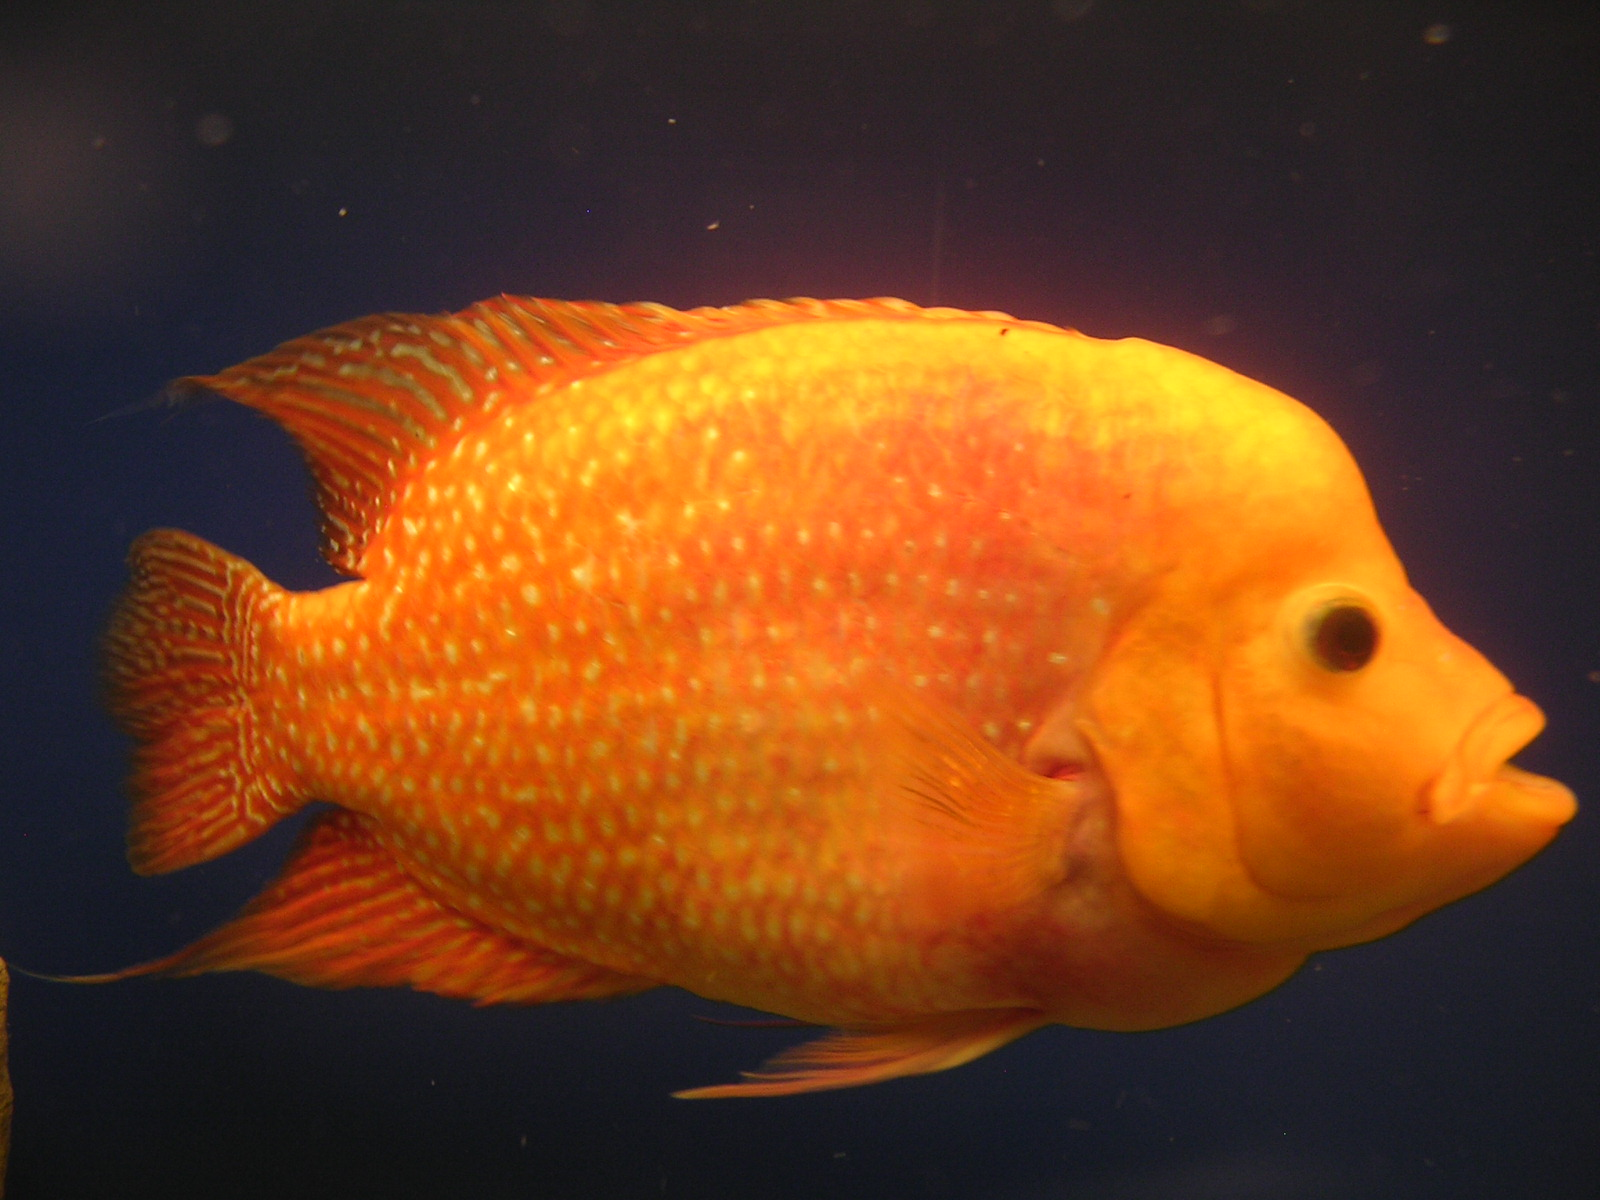 Denison Barb Barbus Denisonii as well Especies Del Rio Amazonas 317004 moreover YourTanks Page22 besides 766174955327467151 furthermore Maingano. on oscar fish yellow